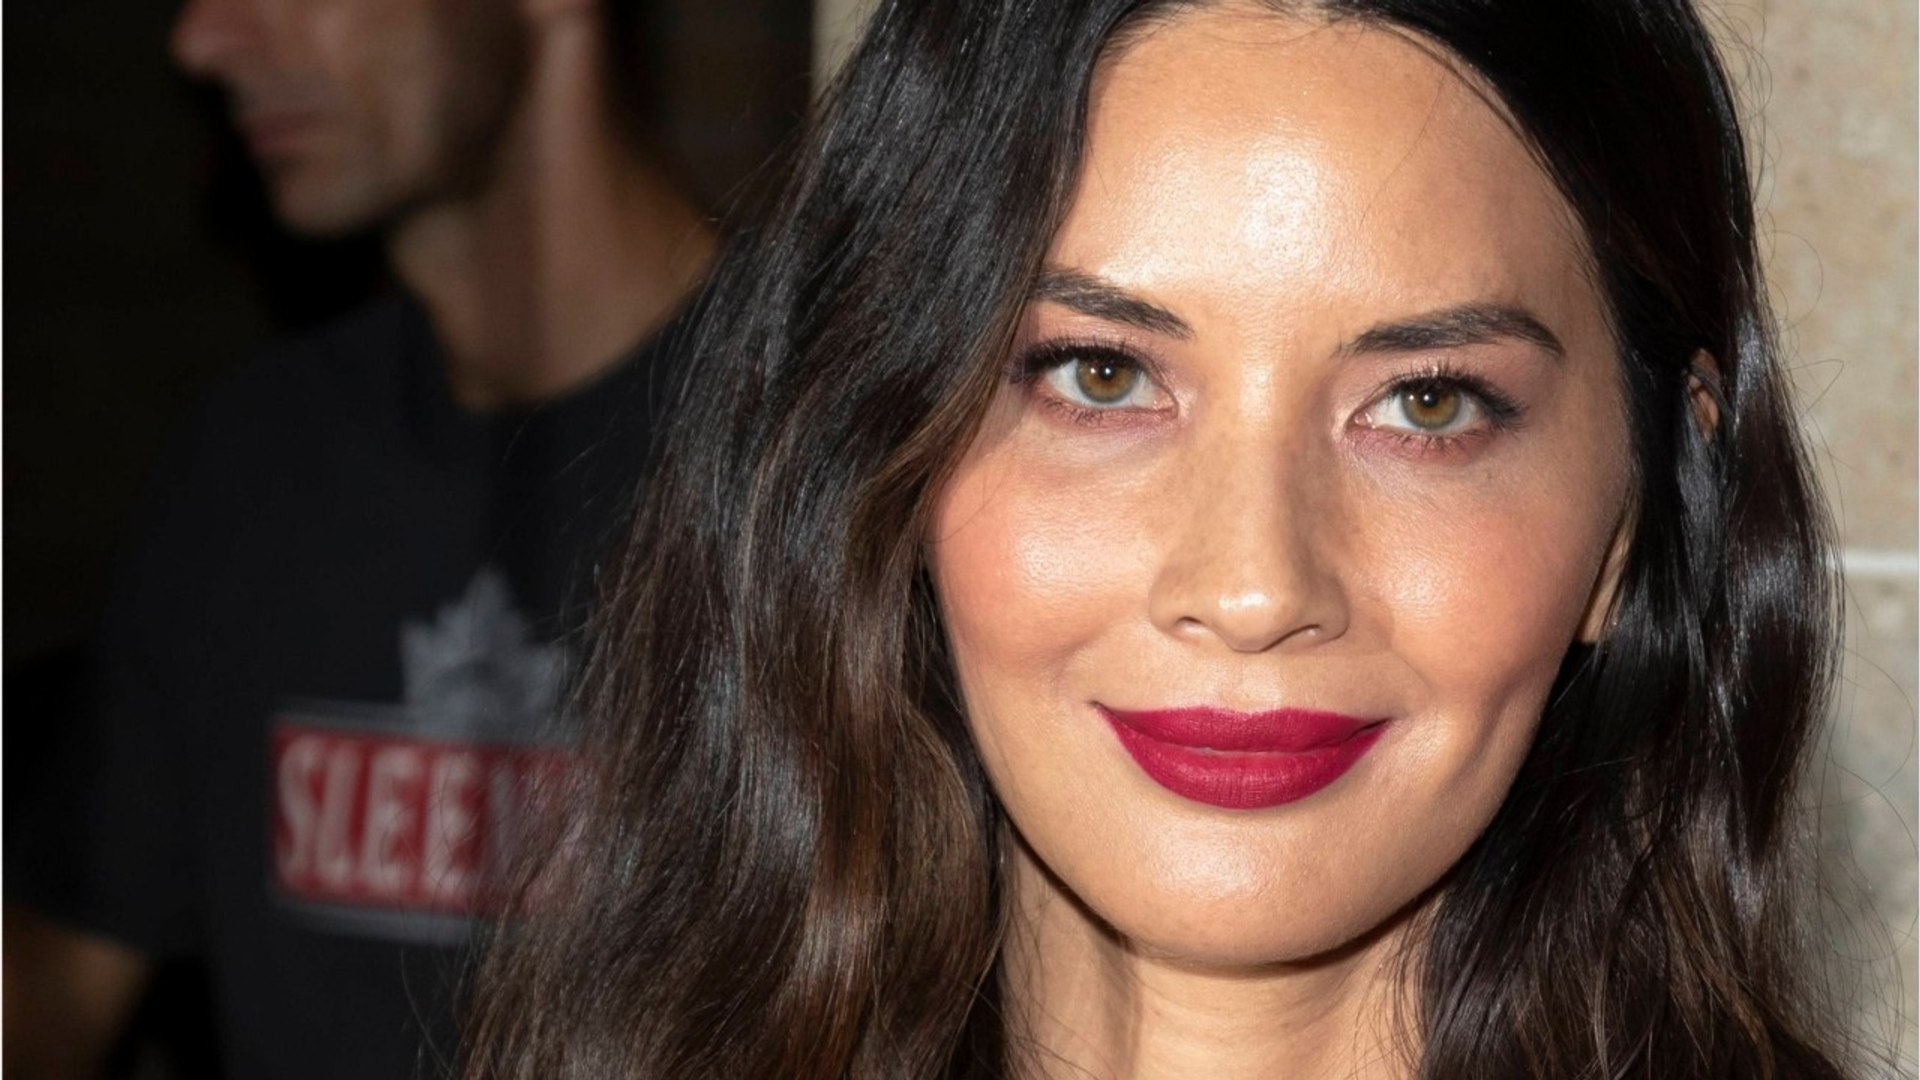 Olivia Munn Hasn't Talked to Director Since Sex Offender Controversy